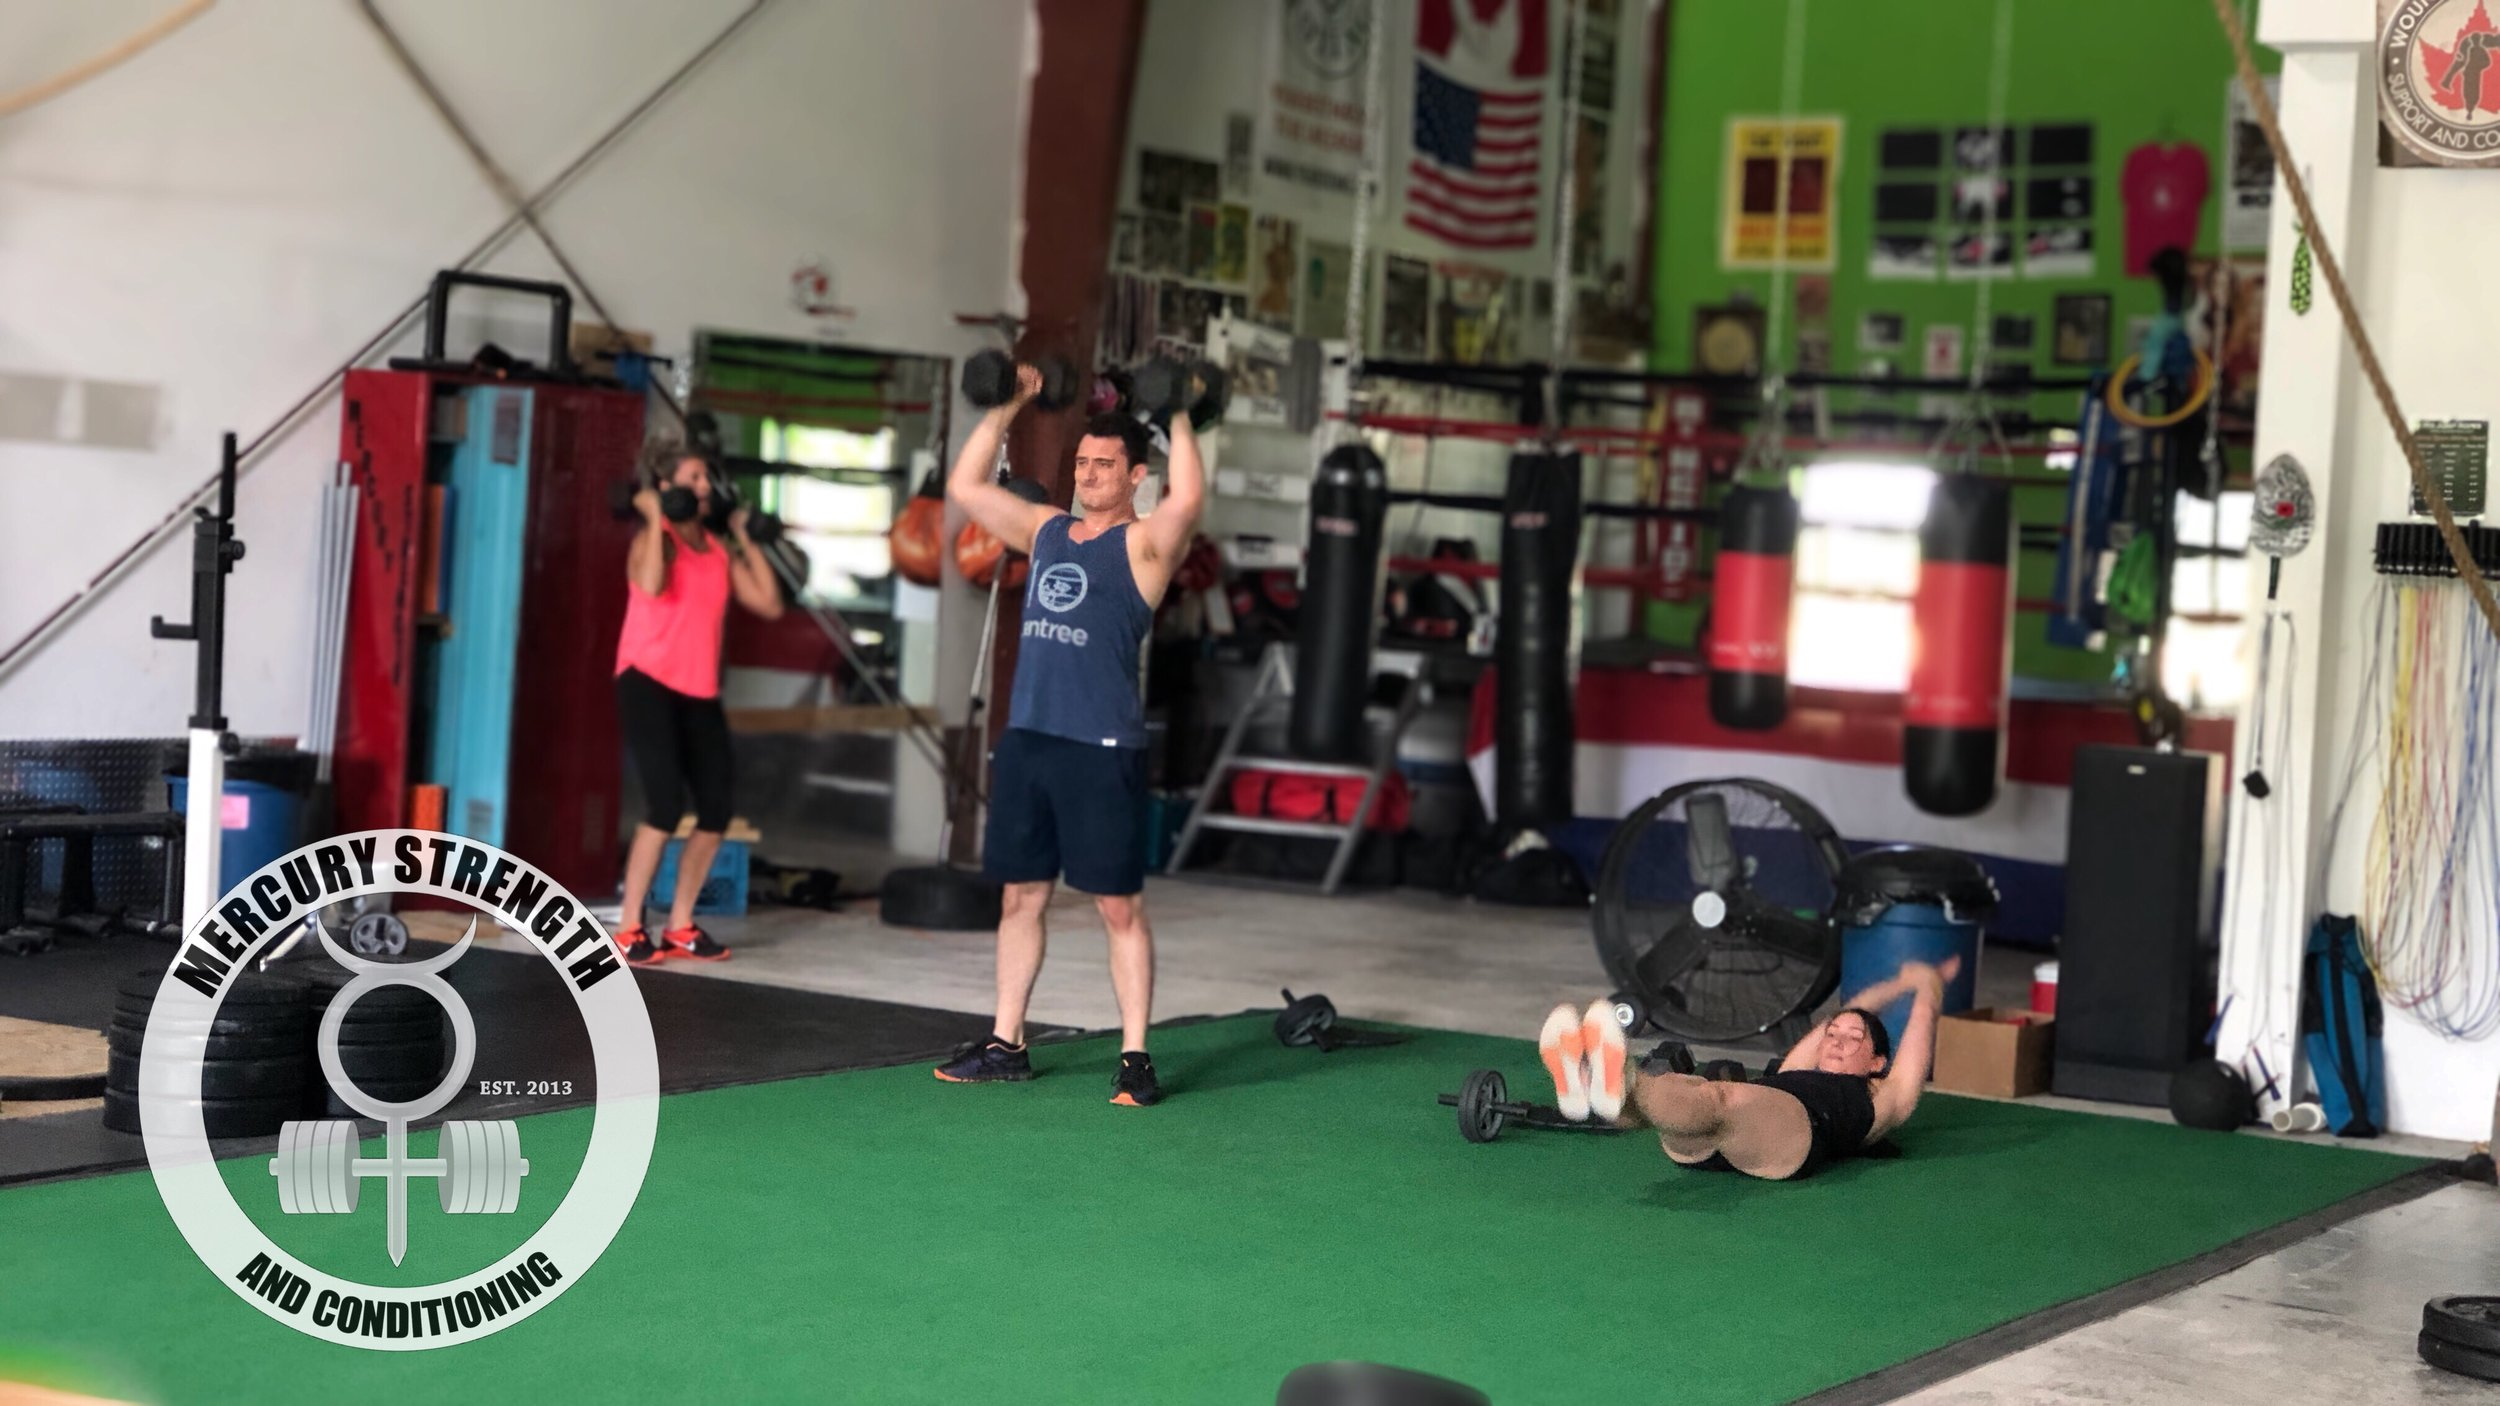 Janet, Eddy, and Mel hitting some DB push presses and hollow rocks